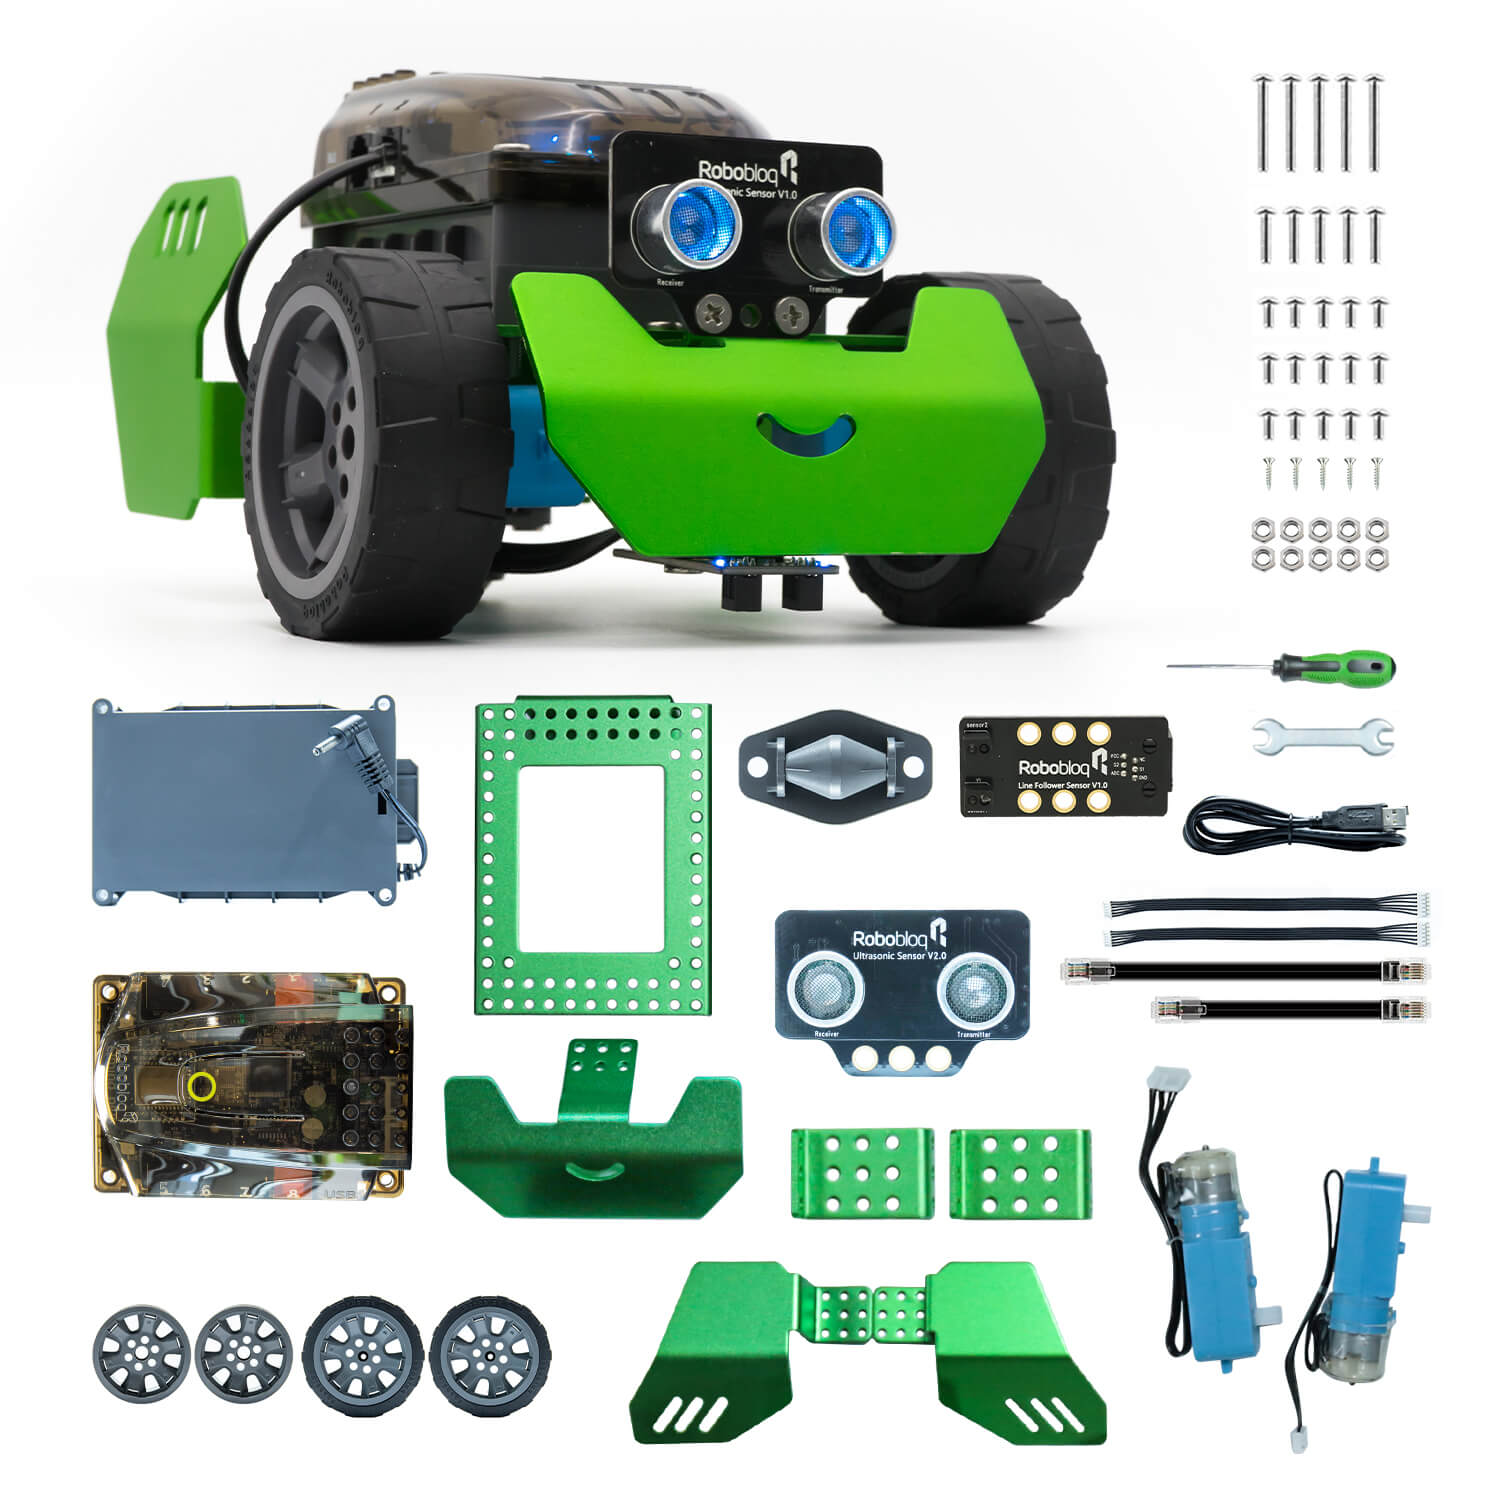 Robobloq STEM Metal Q-Scout Robot Mechanic Kit with Remote Control, Line Tracking, Ultrasonic Sensor, Music Playing for Kids Pro